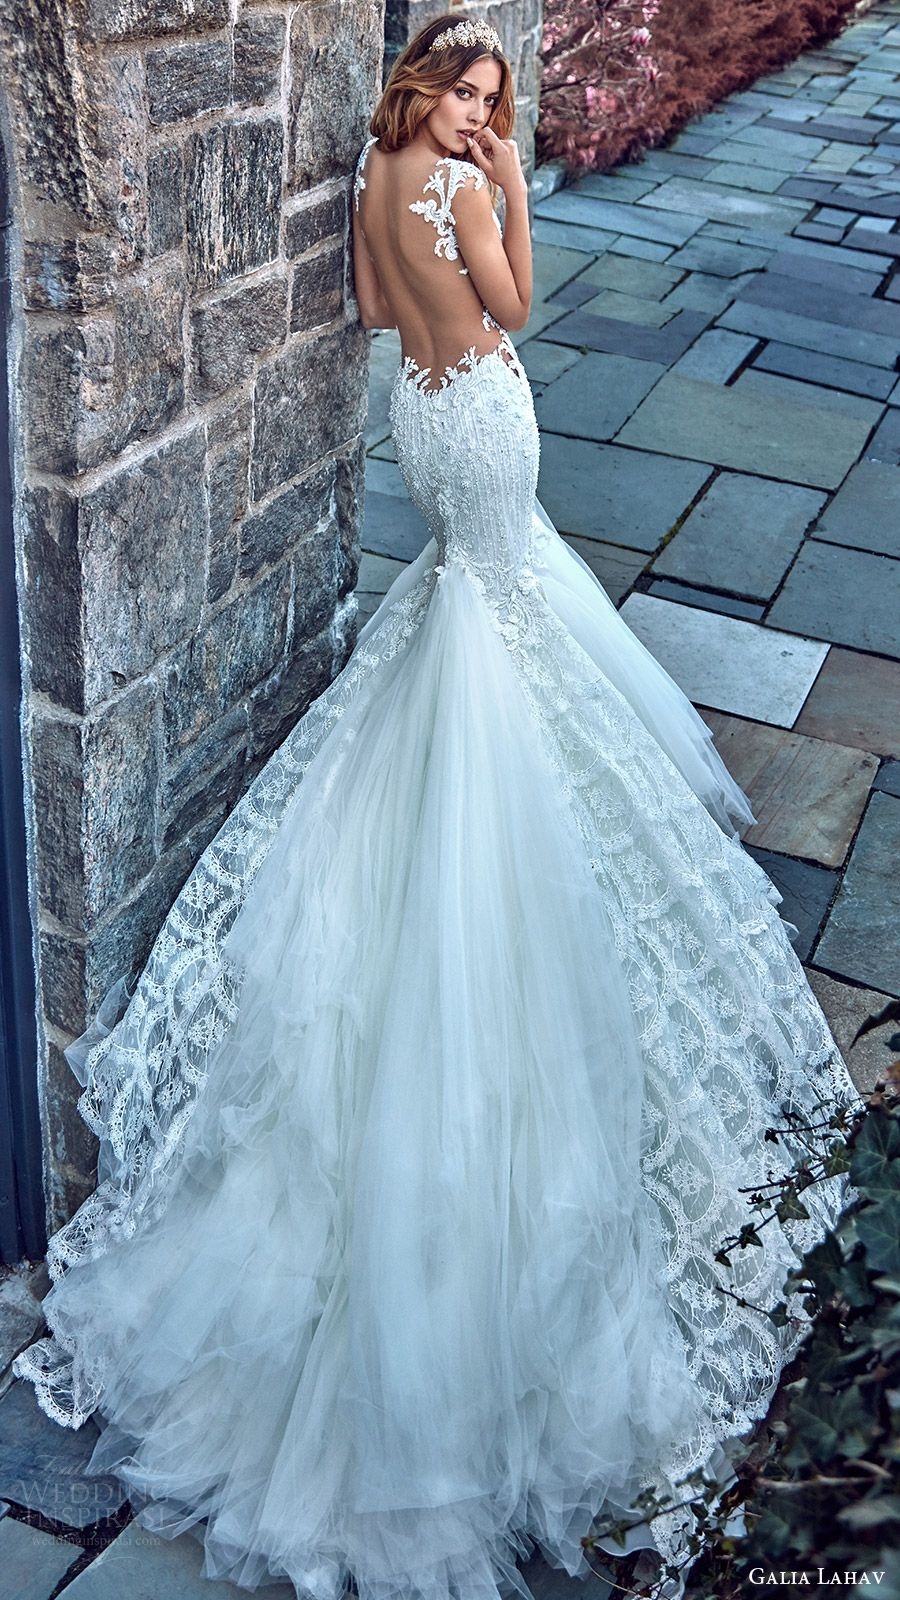 Galia lahav spring couture wedding dresses u ucle secret royal